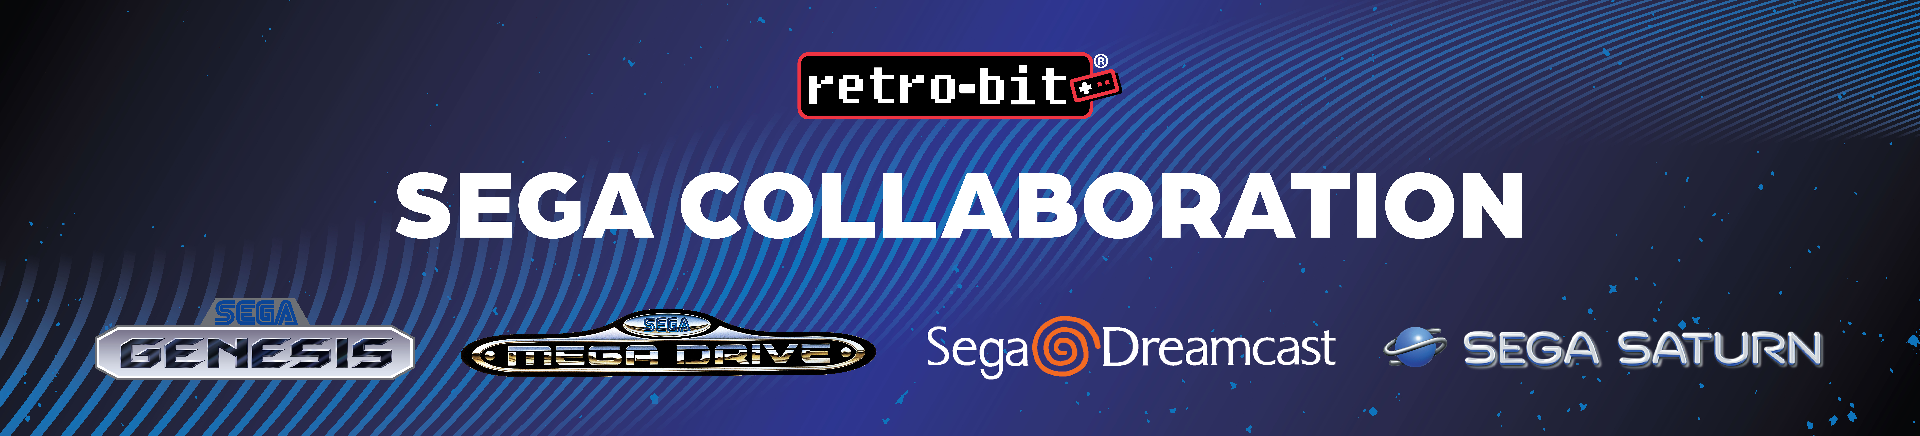 SEGA Collaboration